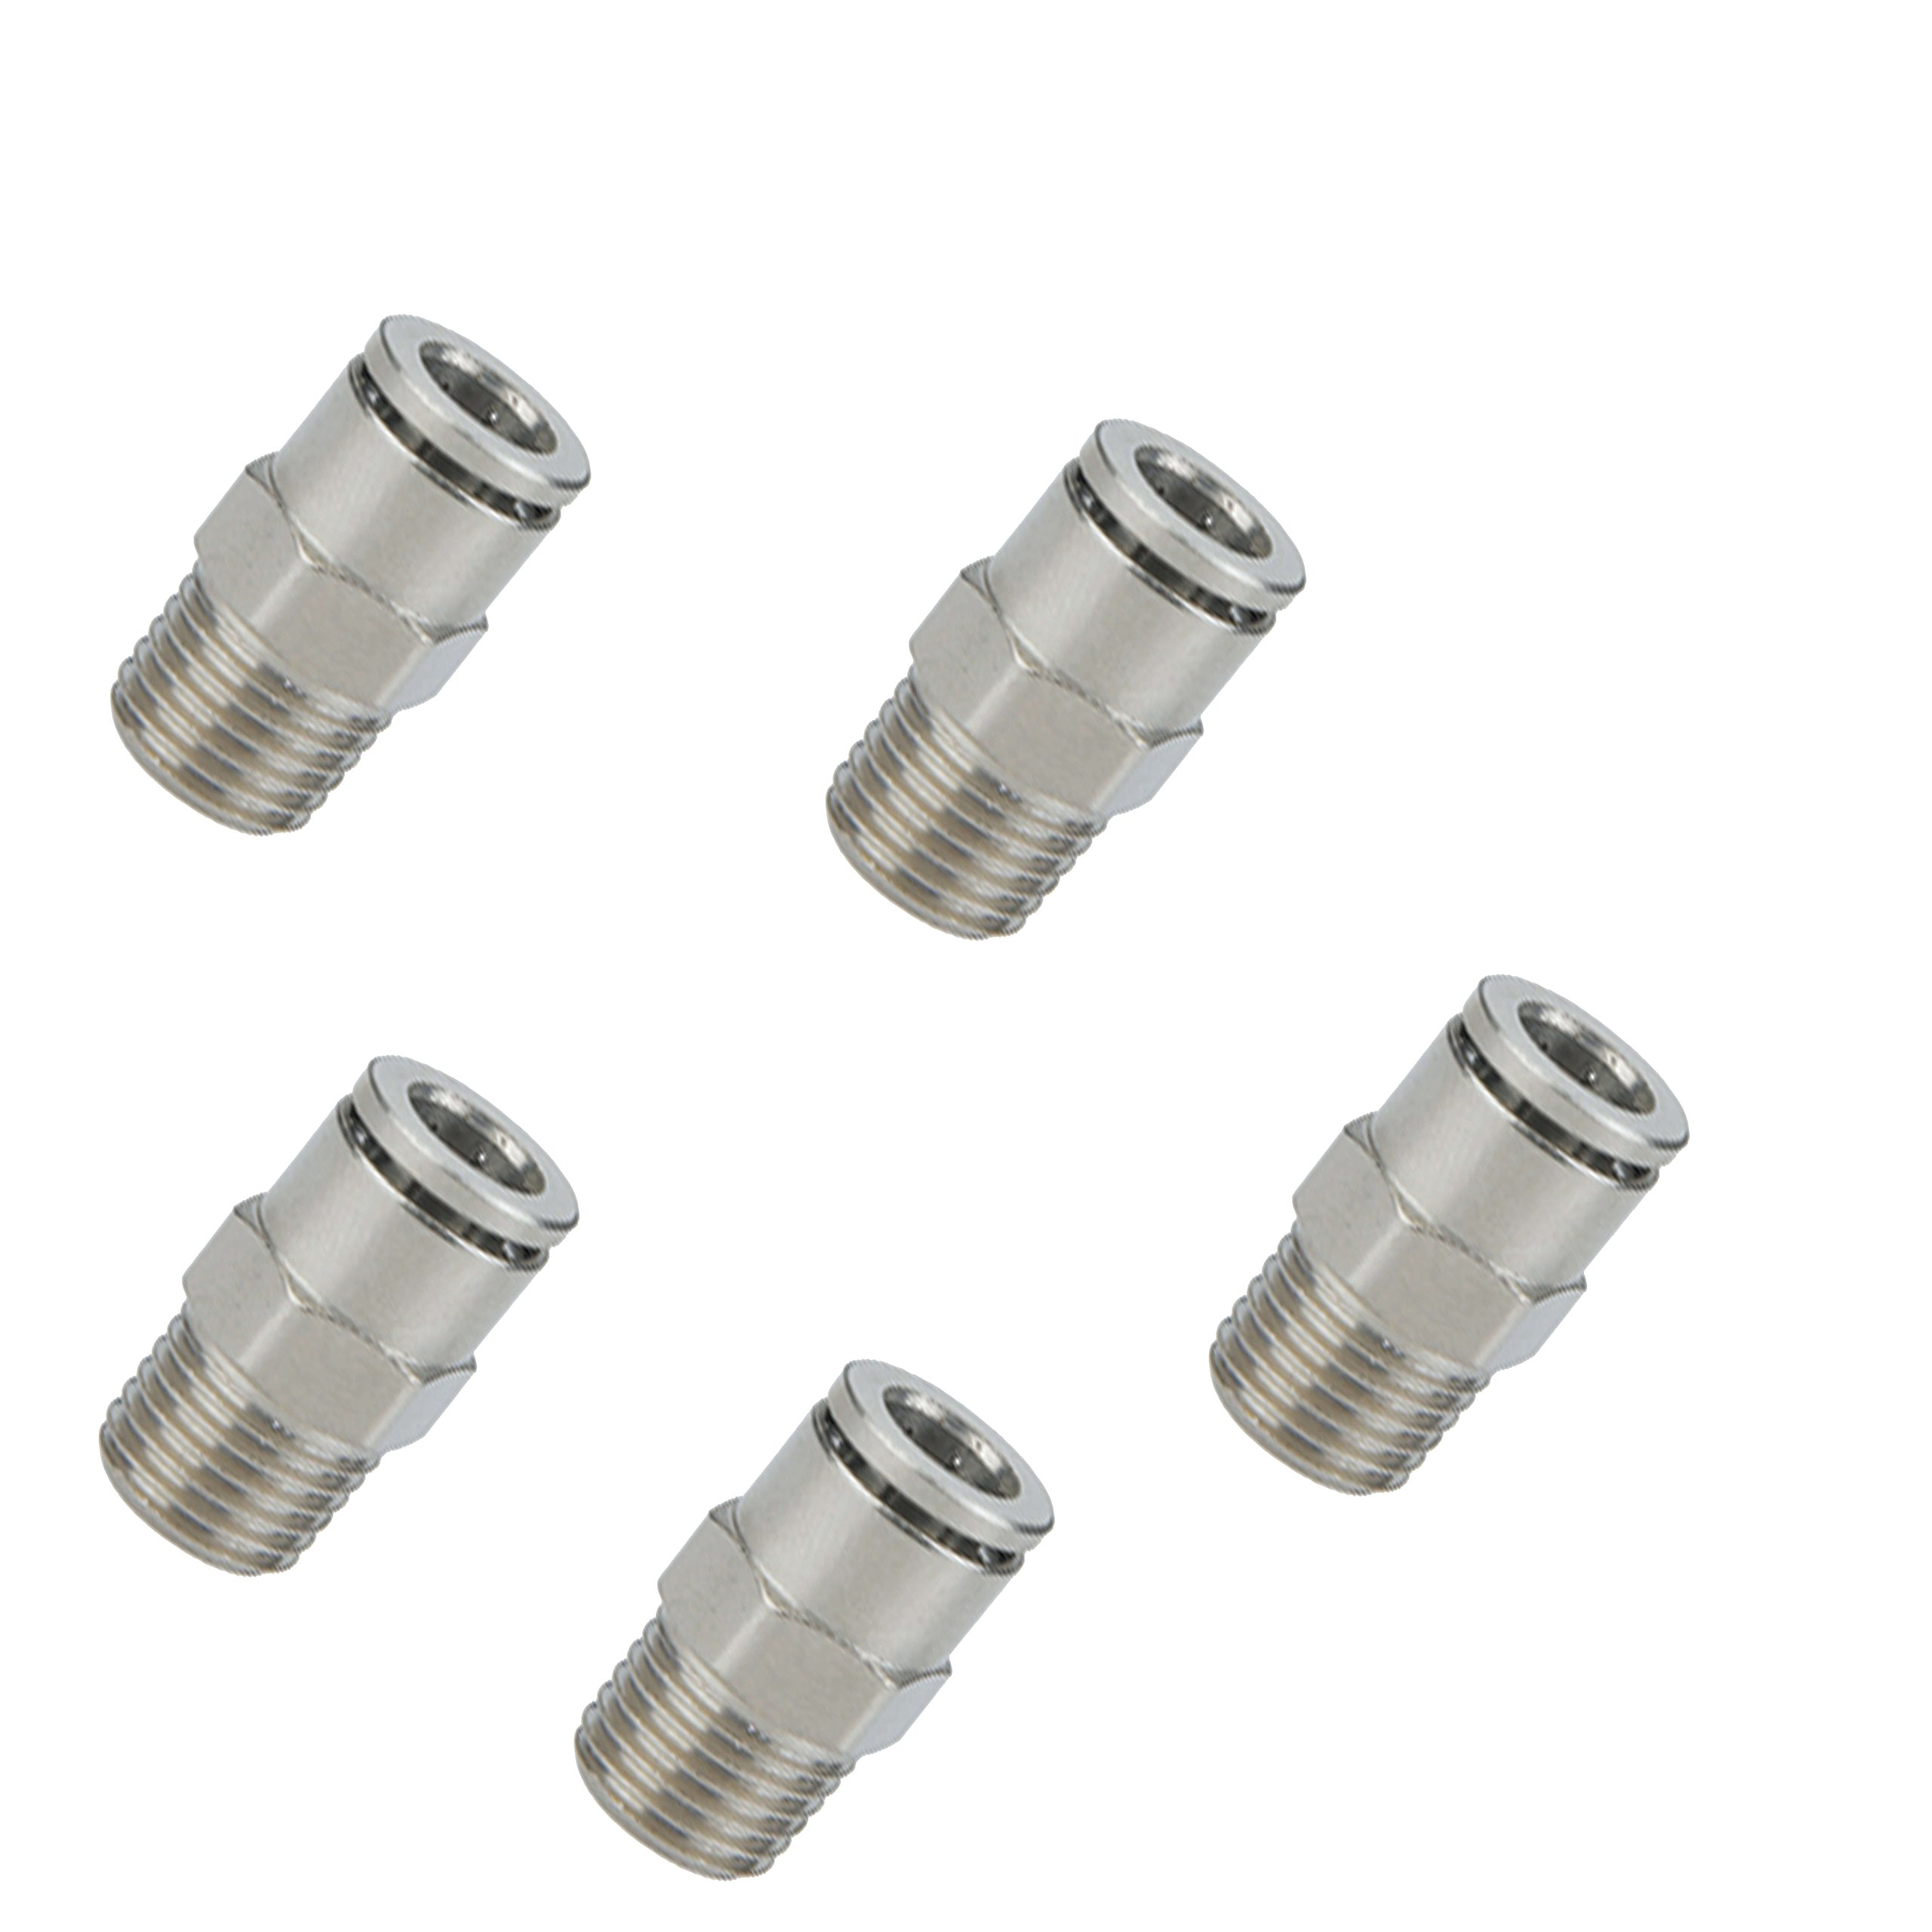 Utah Pneumatic Push To Connect Fittings Nickel-Plated Brass Pc Male Straight 1/4''Od 1/8''Npt Thread Straight Connect Push Fit Fittings Tube Fittings Pneumatic Fittings 5 Pack (1/4od1/8Npt Brass) 5 pack